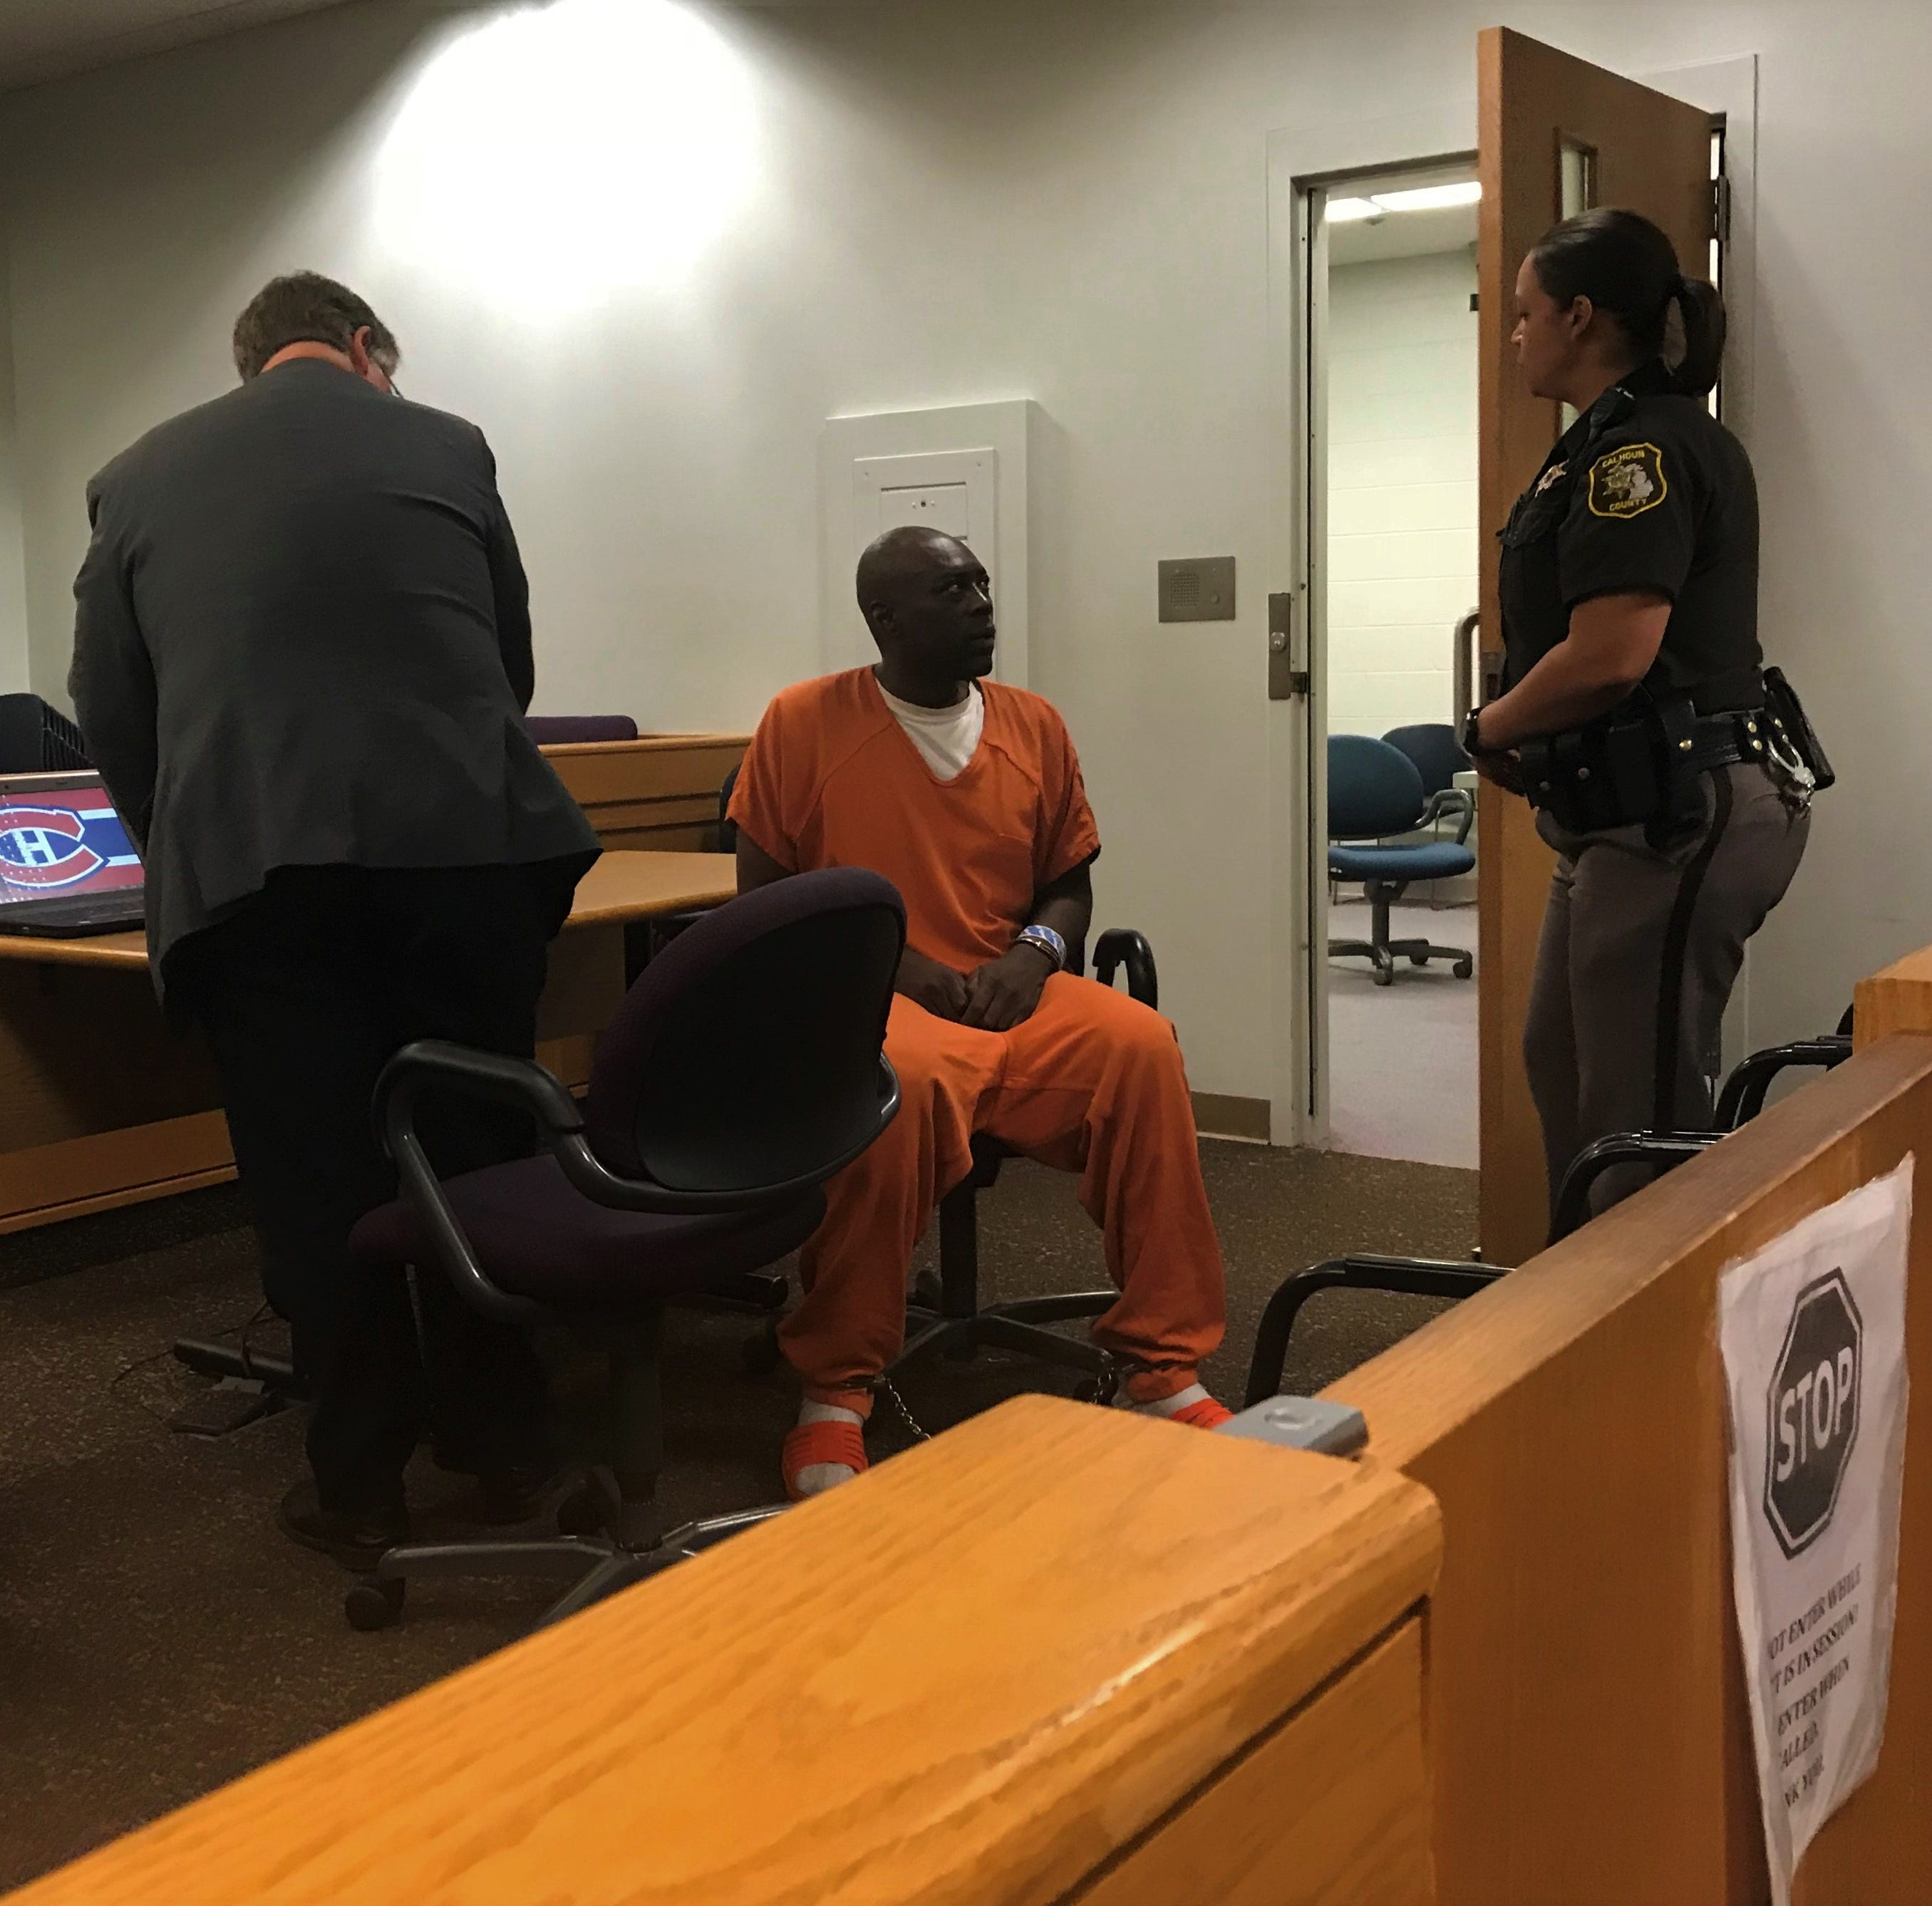 Otha Carroll, 47, of Battle Creek had a preliminary hearing in Calhoun County District Court Thursday on charges of felony murder, assault with intent to murder, arson and two counts of resisting police.